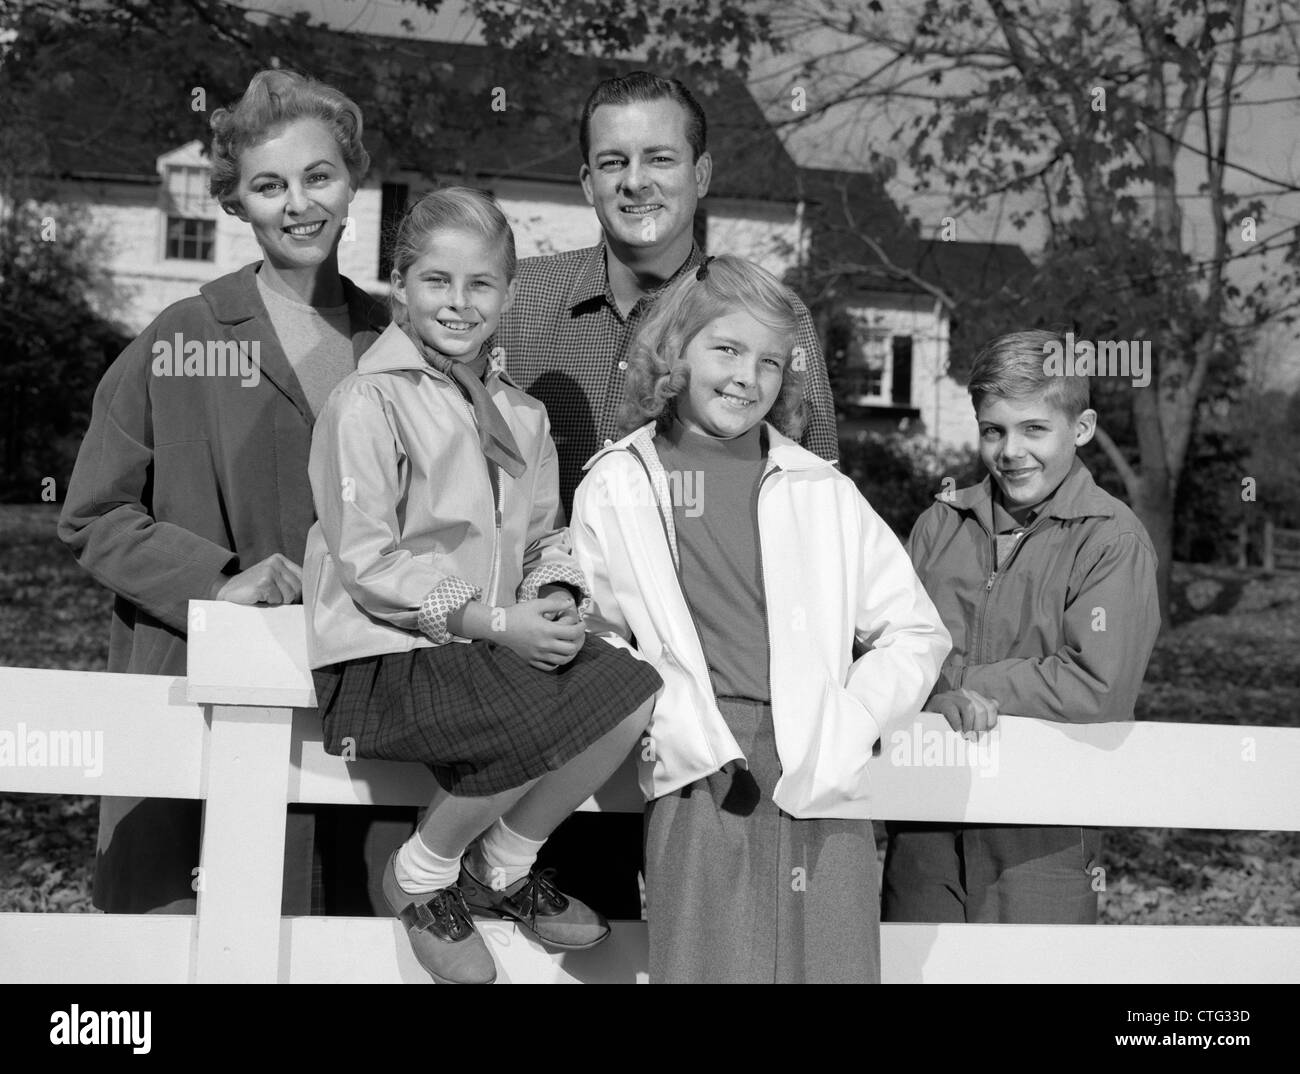 1960s PORTRAIT SMILING FAMILY FATHER MOTHER TWO DAUGHTERS SON BY WHITE FENCE IN FRONT OF SUBURBAN HOUSE IN AUTUMN - Stock Image